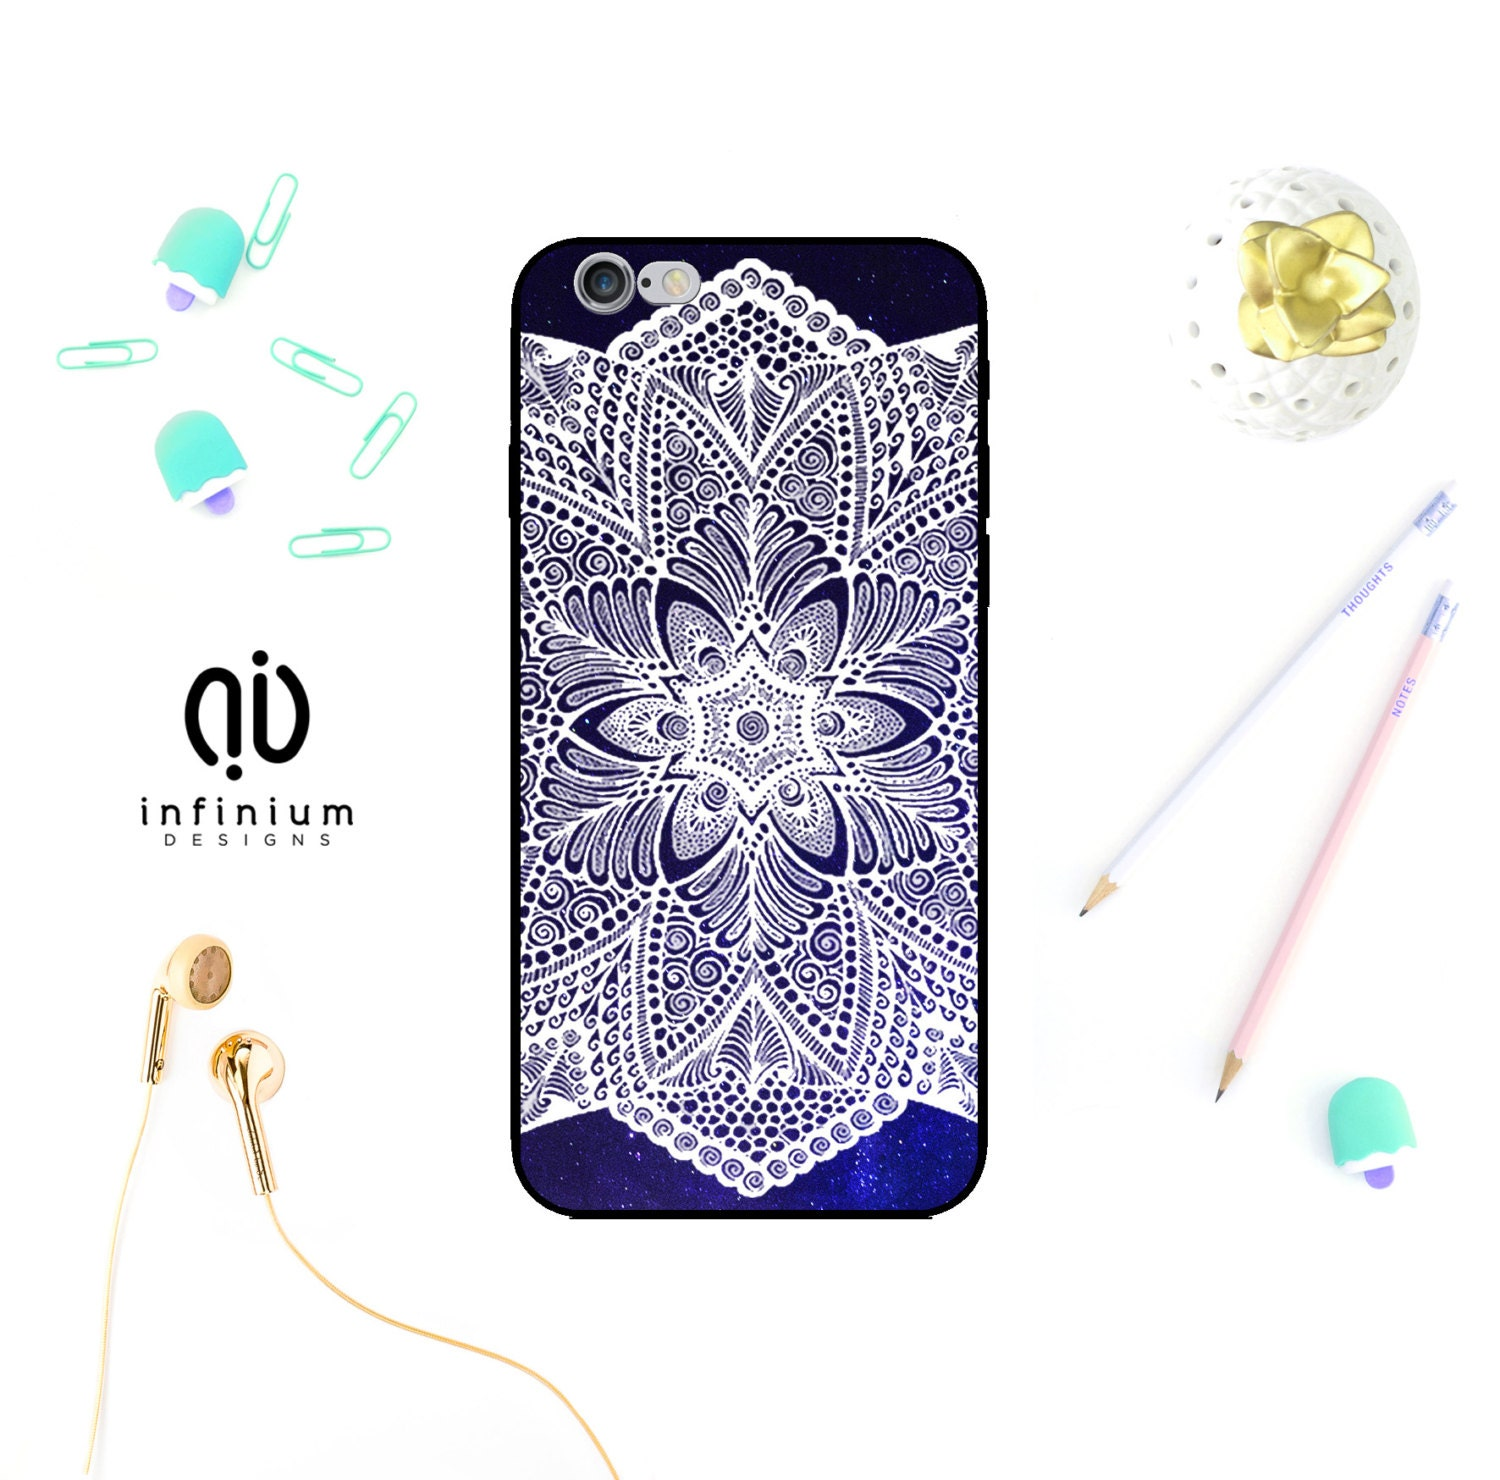 Cosmic Mandala Case For iPhone 6S Samsung S7 S7 Edge S6 S6 Edge Galaxy A5 Galaxy A3 Core Prime iPhone 7 7 Plus SE 5S  Touch 6